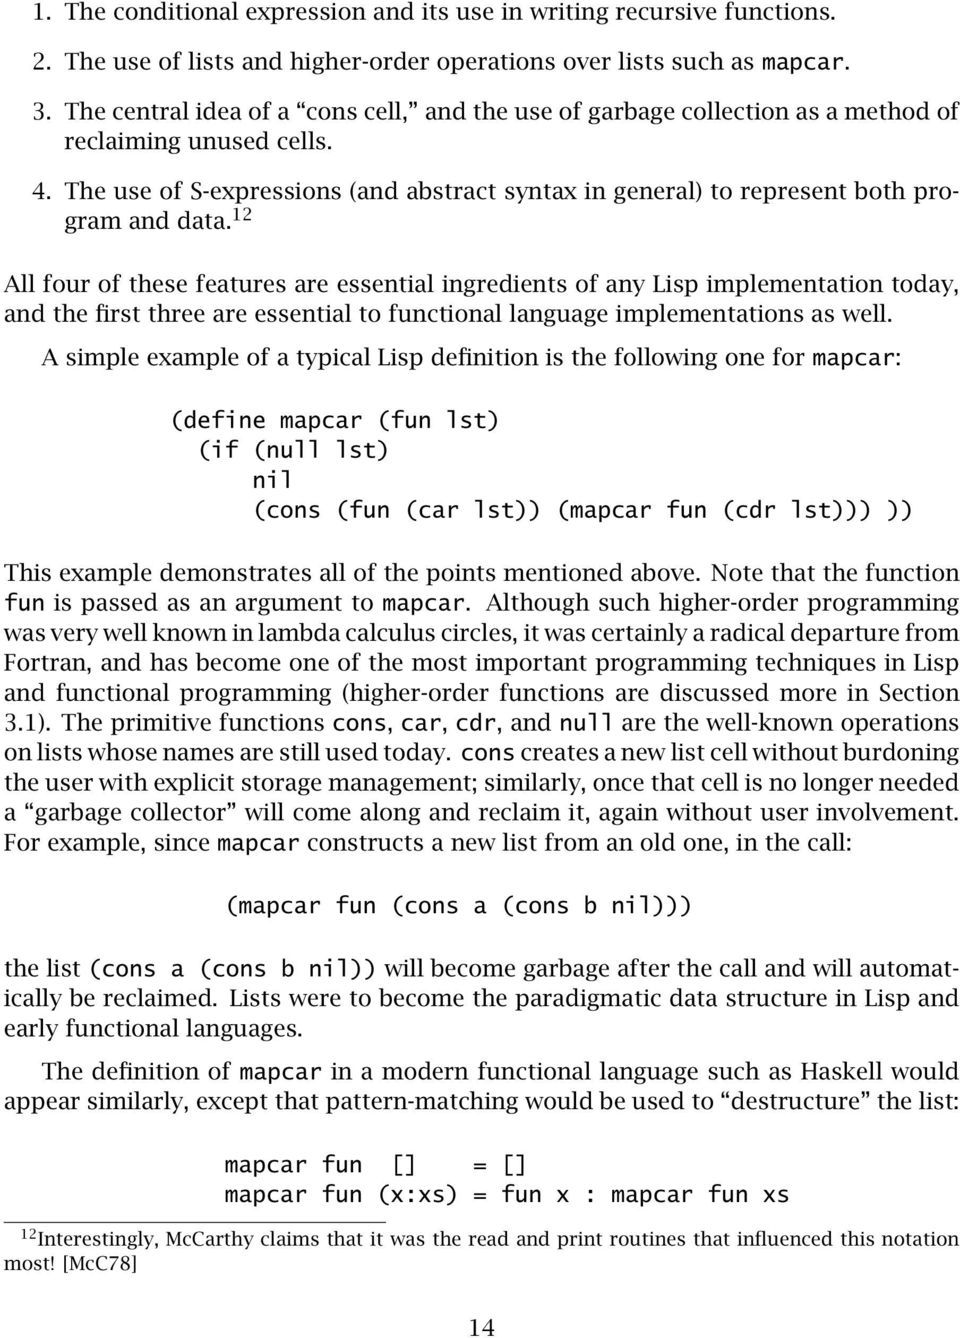 The use of S-expressions (and abstract syntax in general) to represent both program and data.